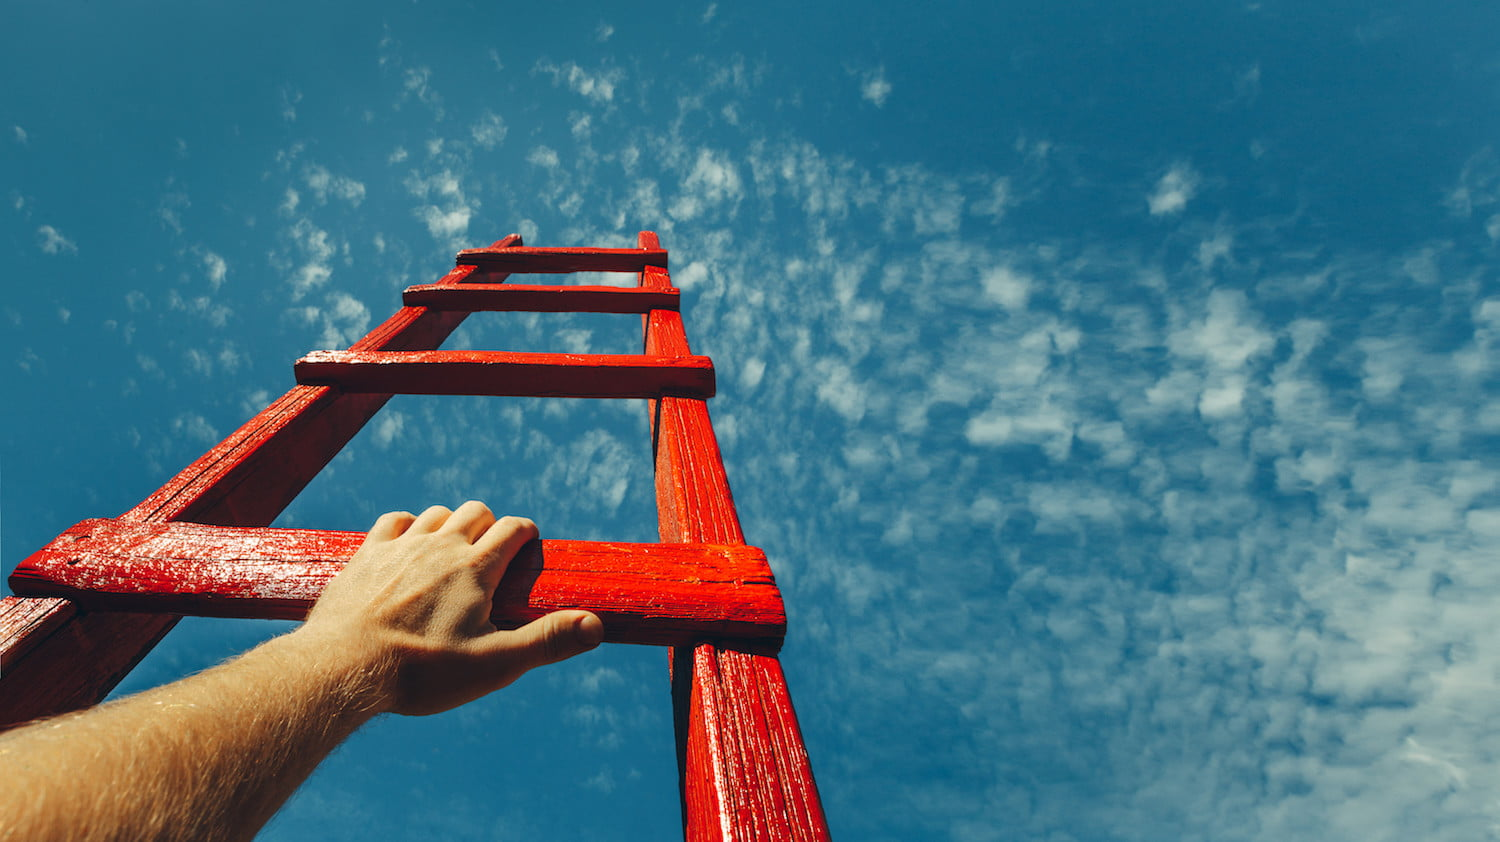 ladder Shutterstock - New Bitcoin And Crypto Warning Has Been Issued - BTC May Fall To $4,800